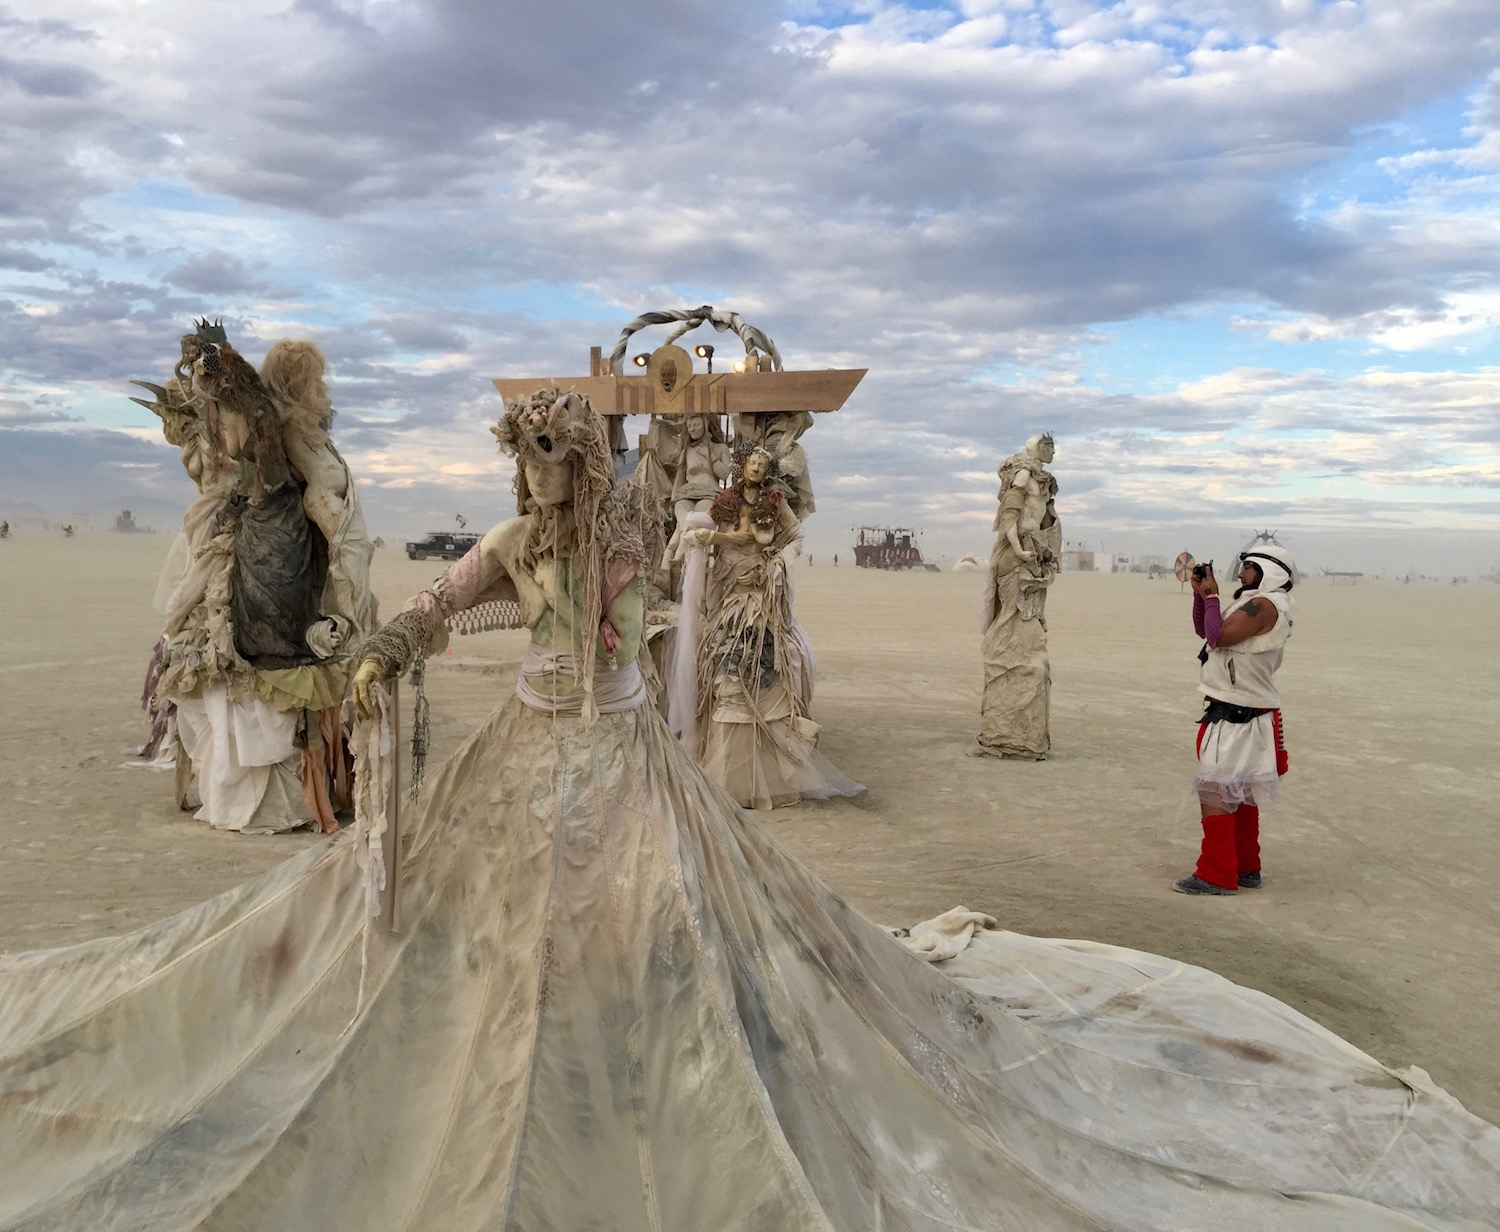 Sand Witches in the desert. Part of the art at Burning Man, 2016